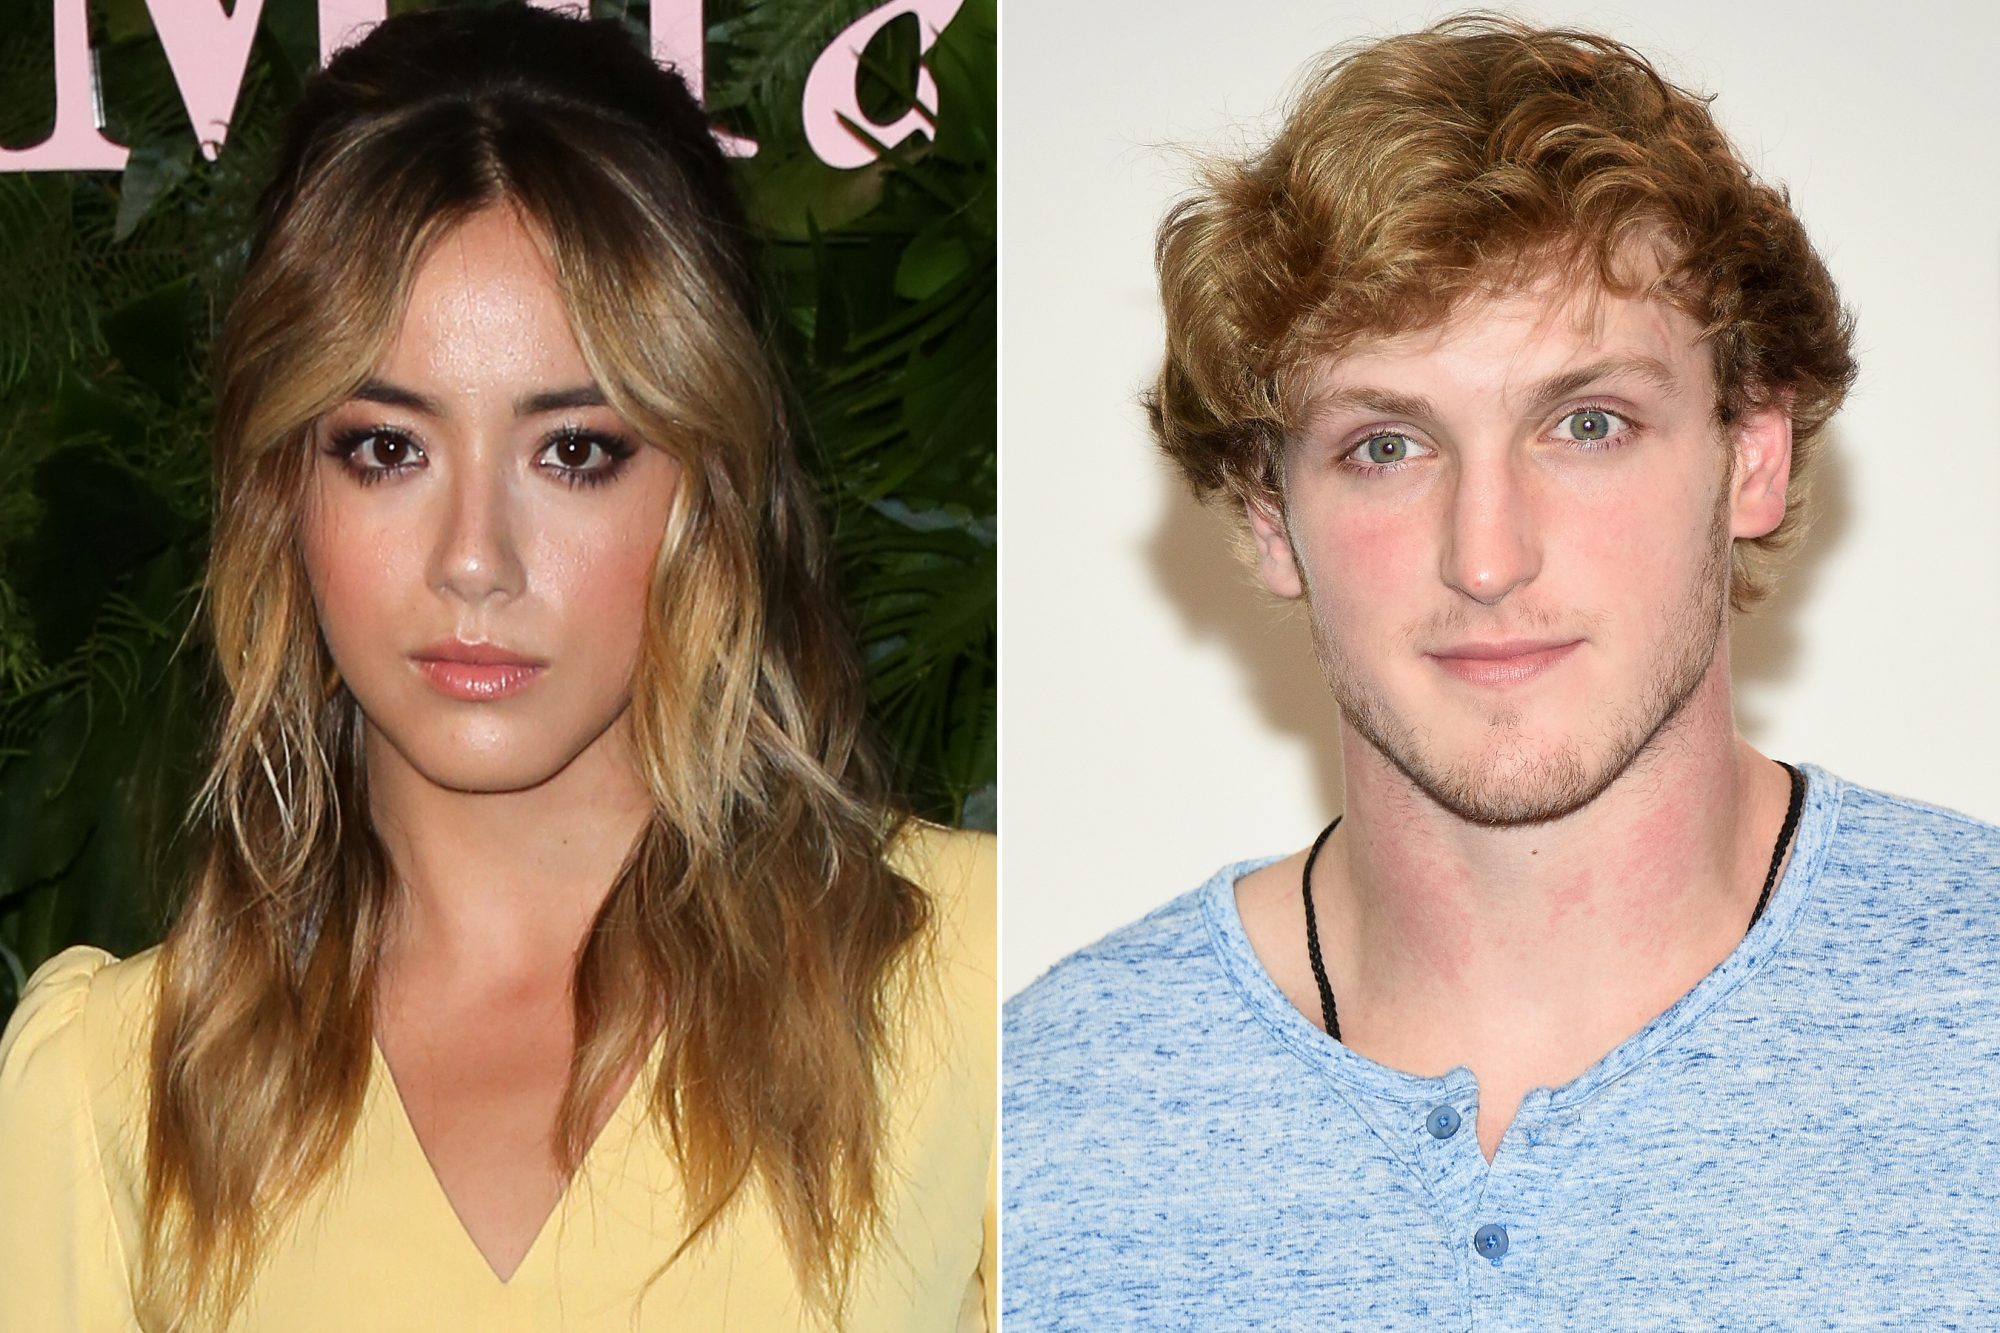 Chloe-Bennet-Logan-Paul